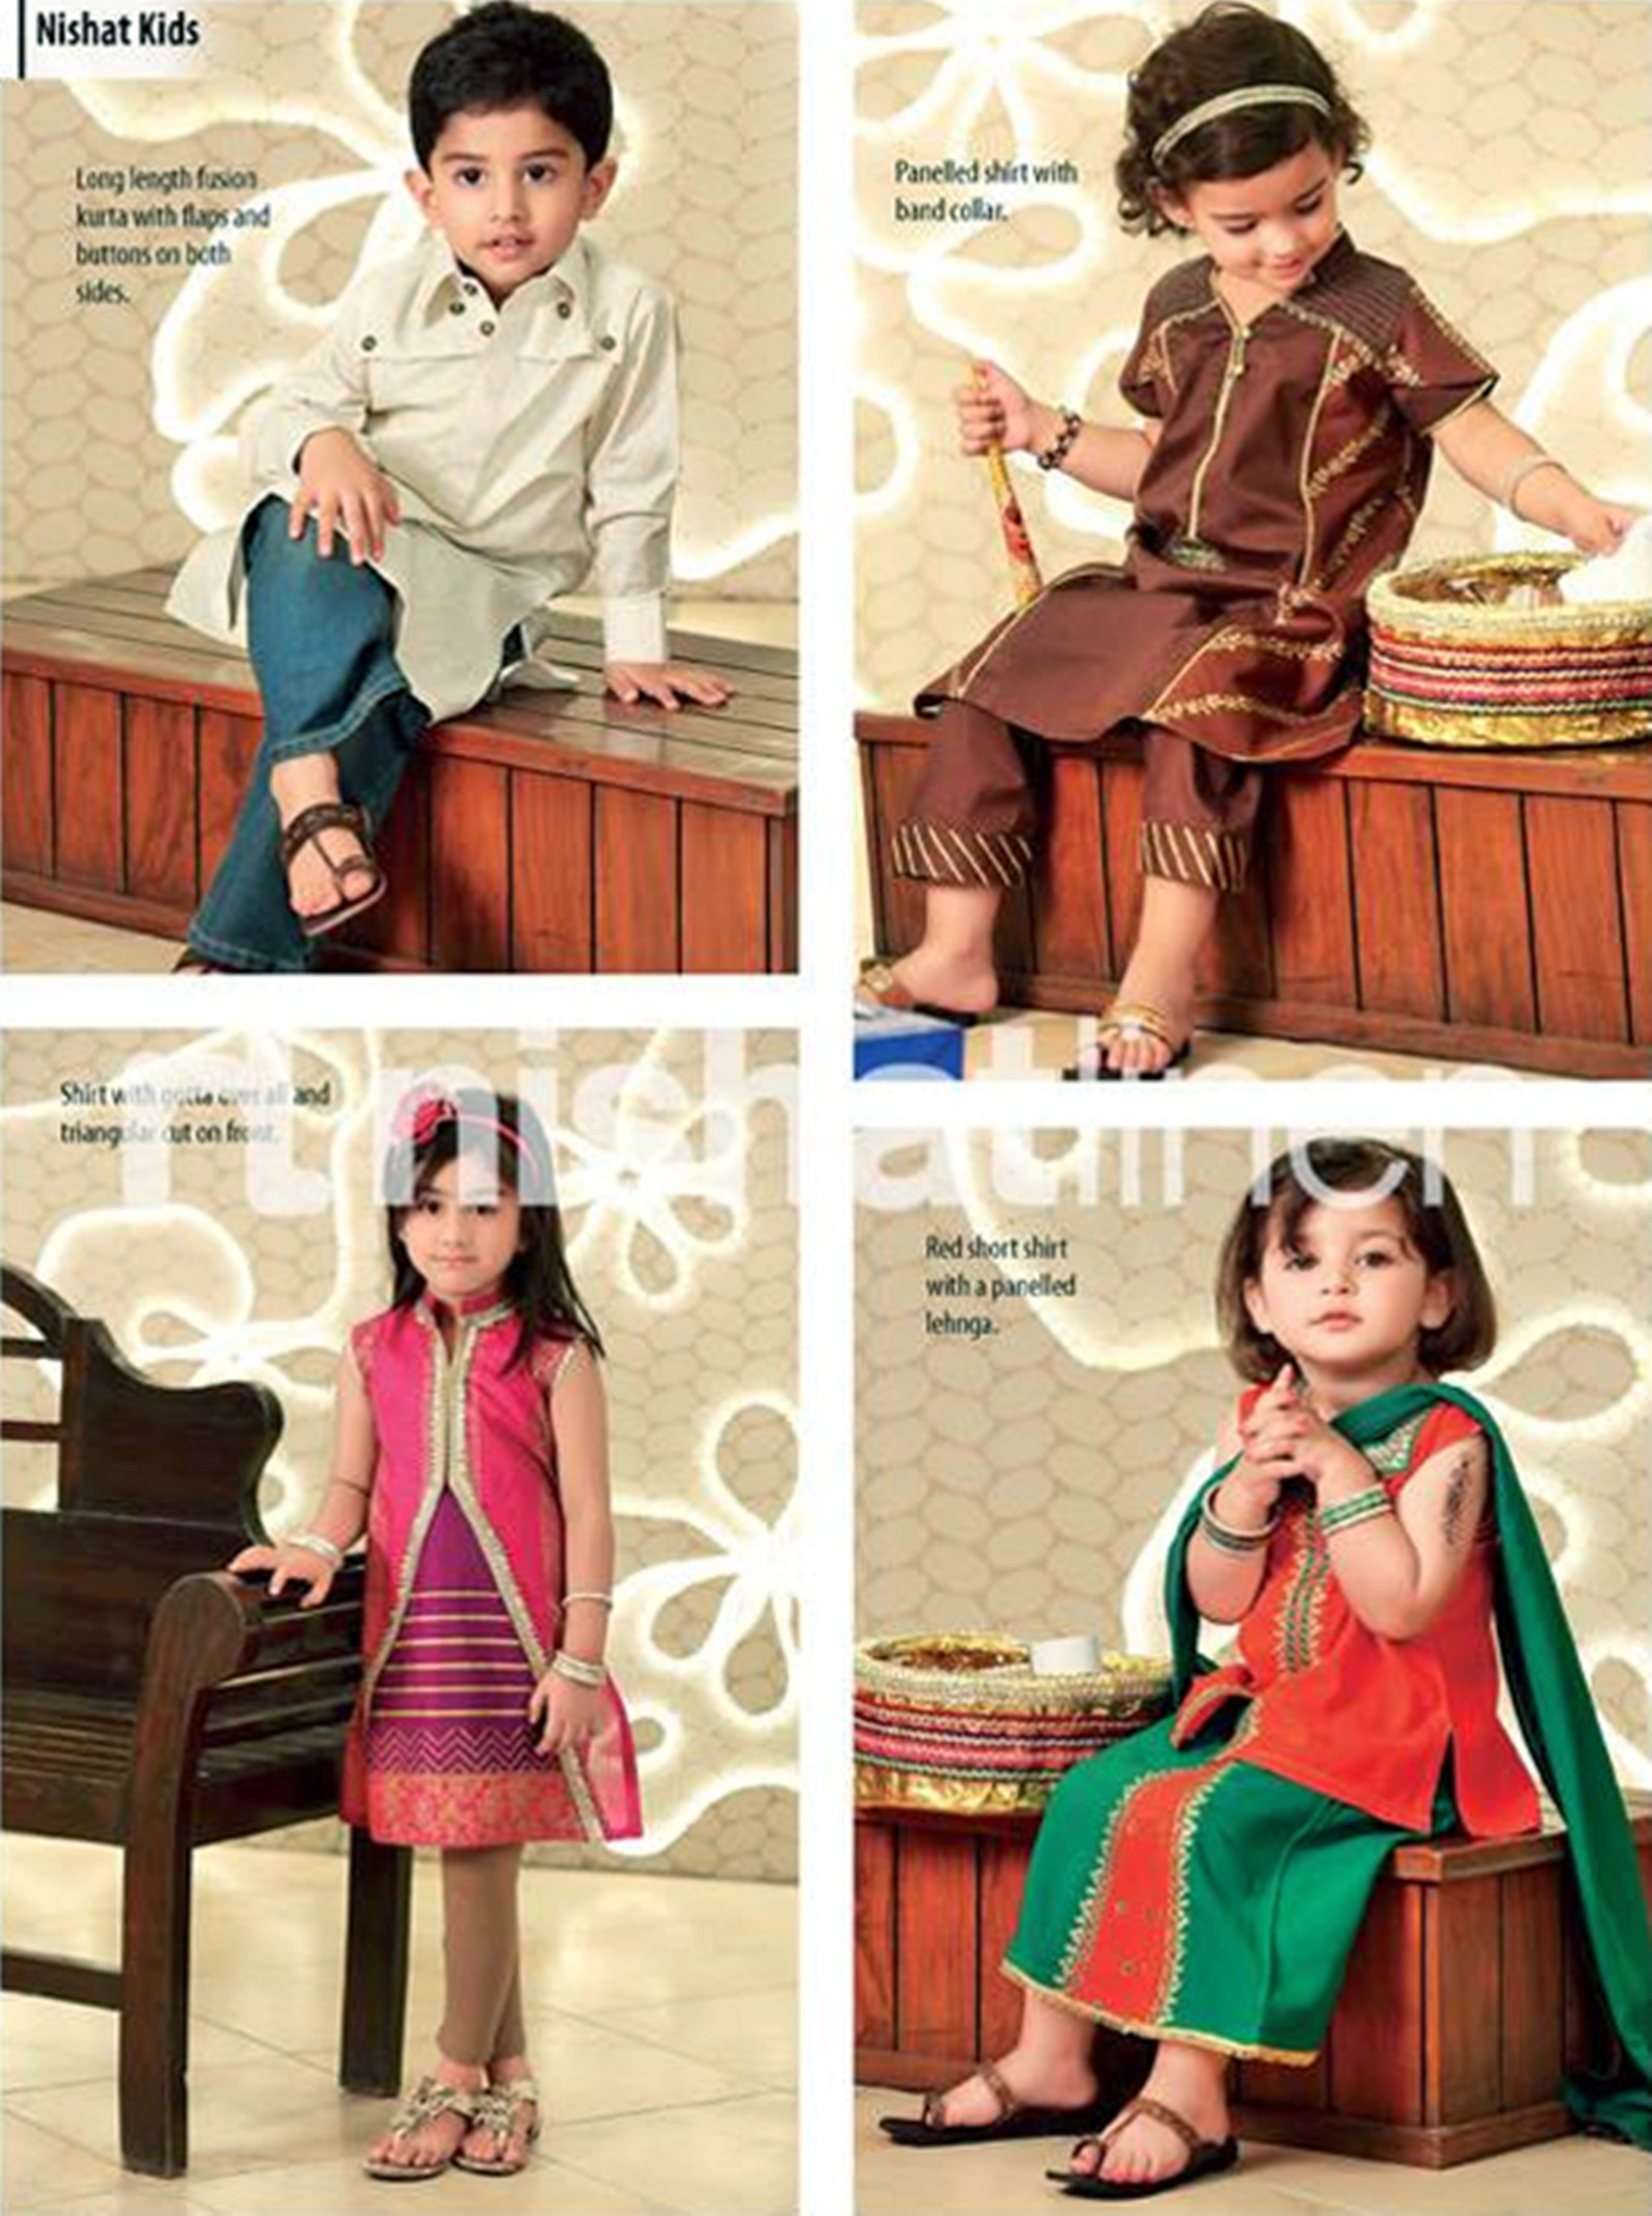 Nishat Linen Kids Boys Girls Clothes Brands Products